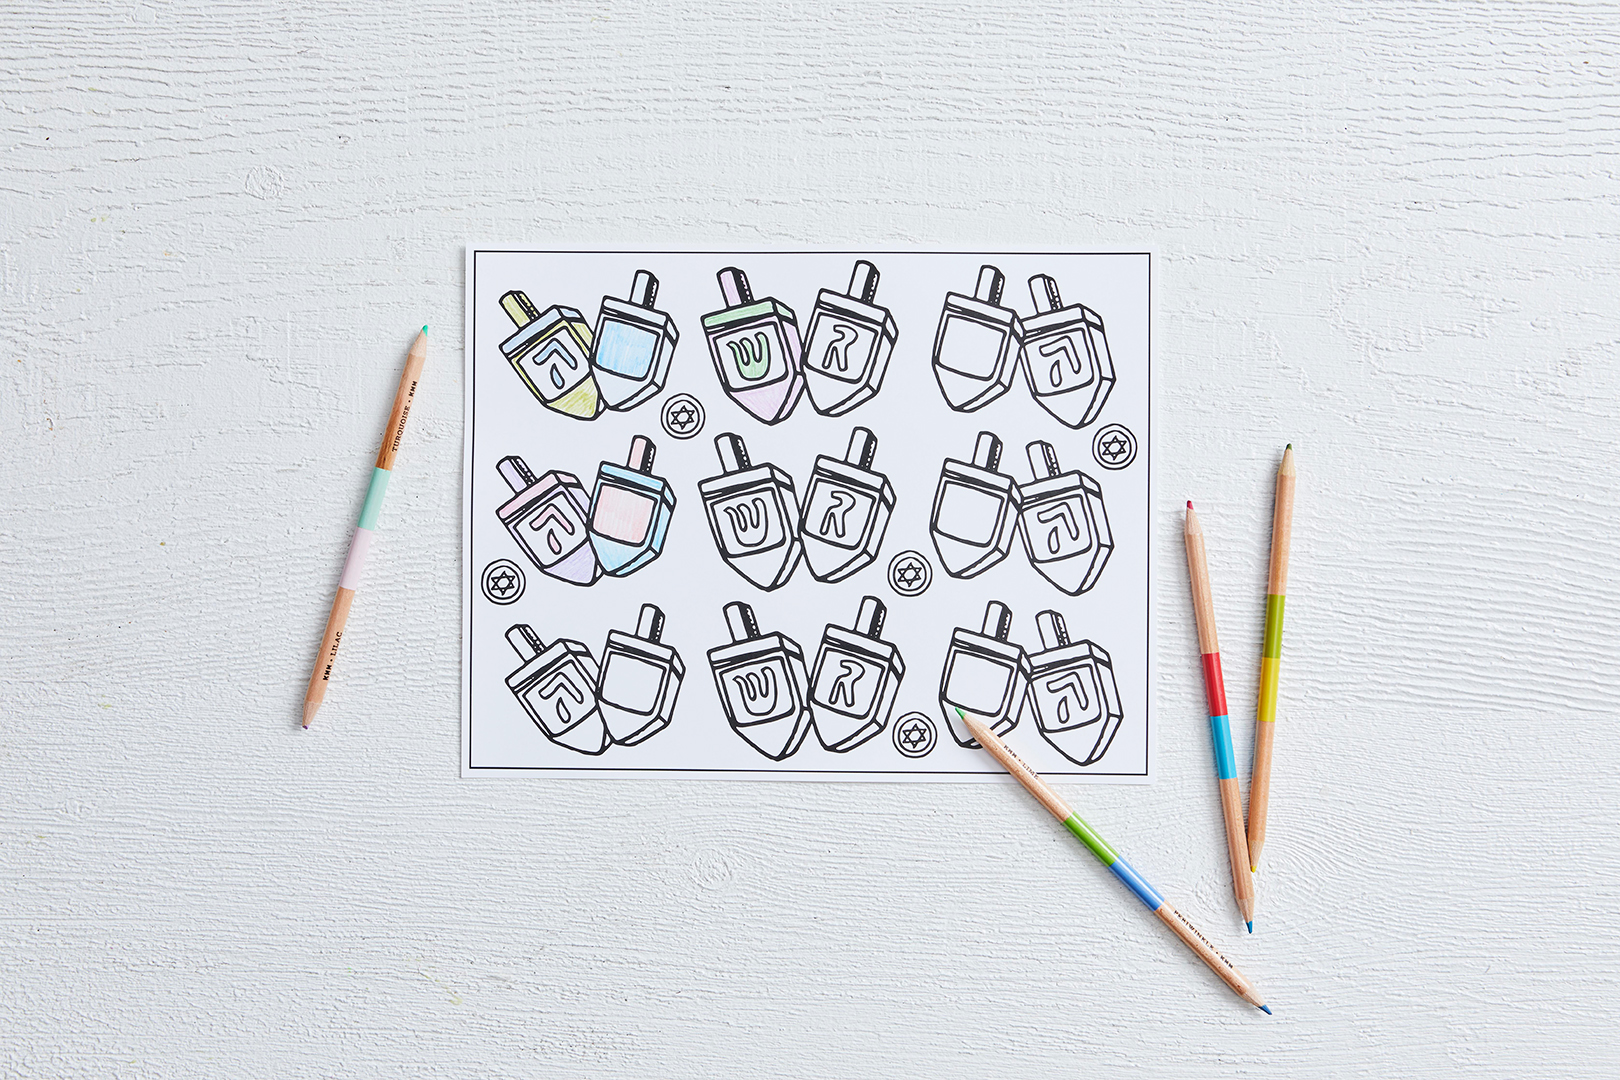 coloring page dreidels for hanukkah with colored pencils